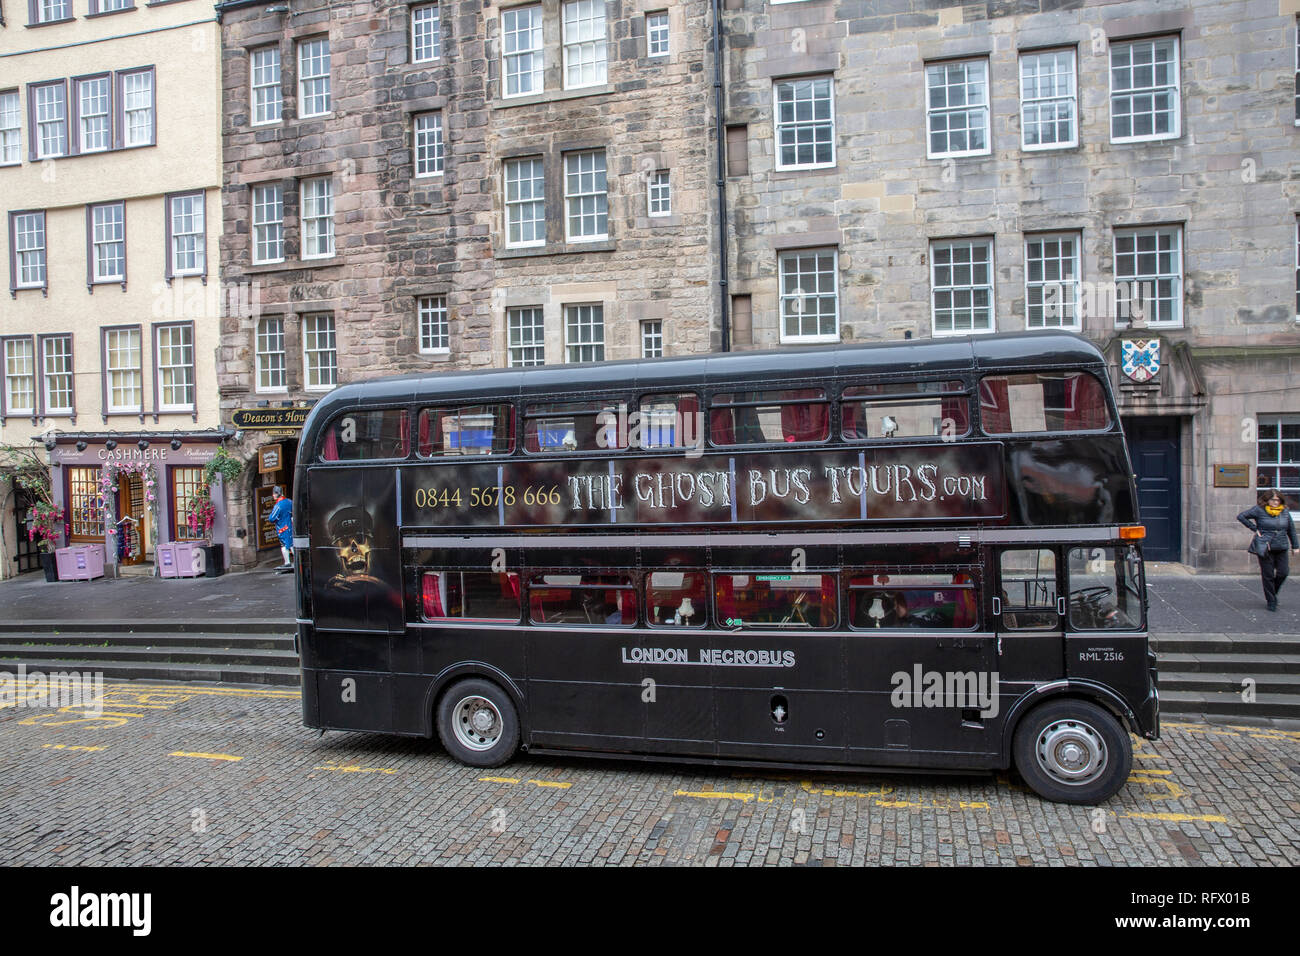 Edinburgh double decker bus for Ghost Tours around Edinburgh,Scotland,UK Stock Photo